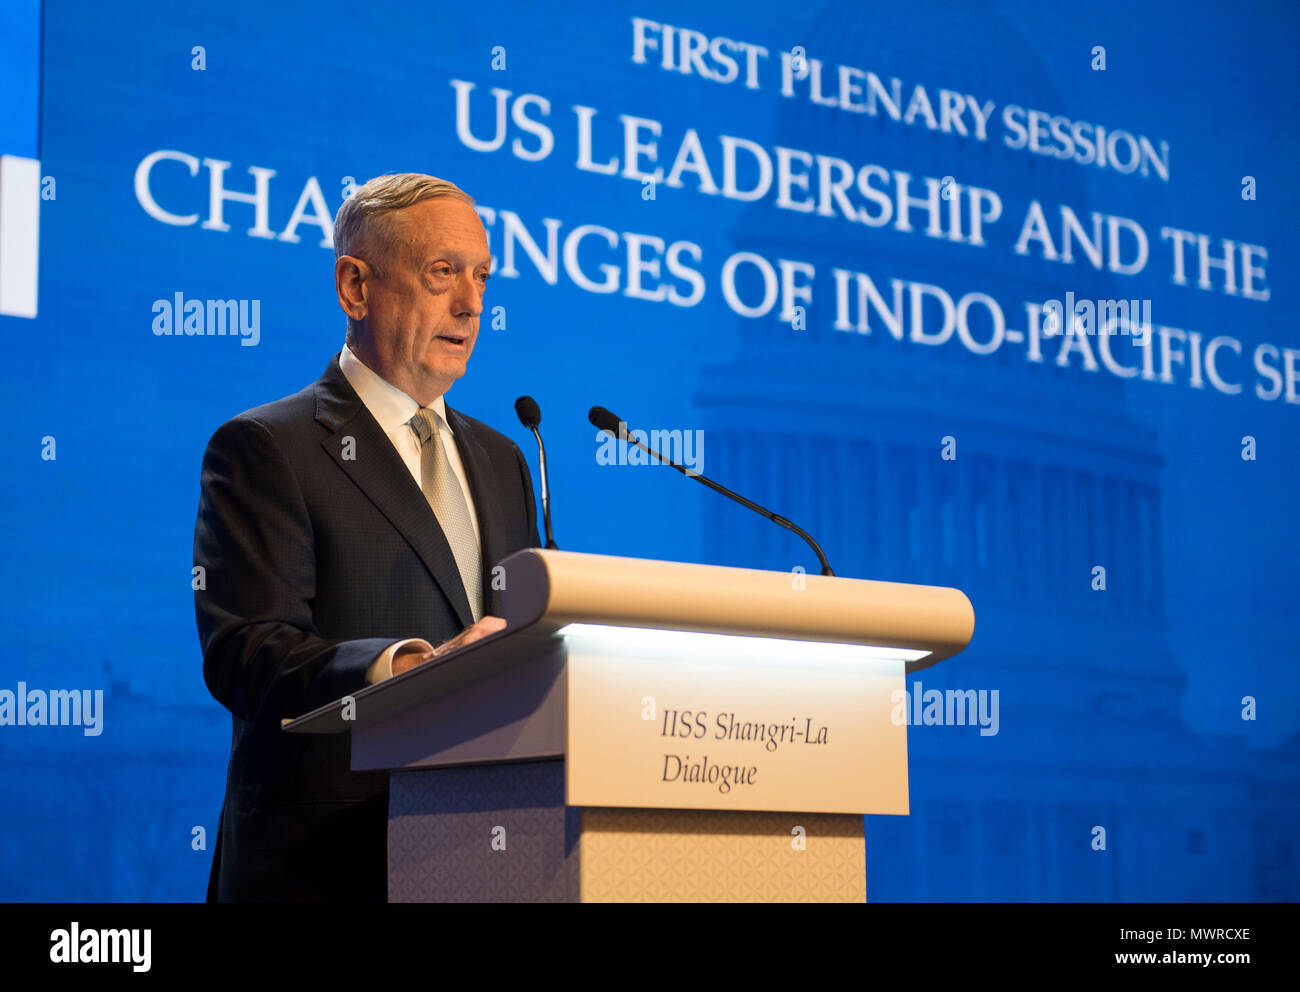 180602-N-OU129-267 SINGAPORE (June 1, 2018) Secretary of Defense Jim Mattis delivers remarks during the first plenary session of the Shangri-La Dialogue 2018 June 2. The Shangri-La Dialogue, held annually by the independent think tank, the International Institute for Strategic Studies (IISS), is an inter-governmental security forum which is attended by defense ministers and delegates from more than 50 nations. (U.S. Navy photo by Mass Communication Specialist 2nd Class Joshua Fulton/Released) - Stock Image